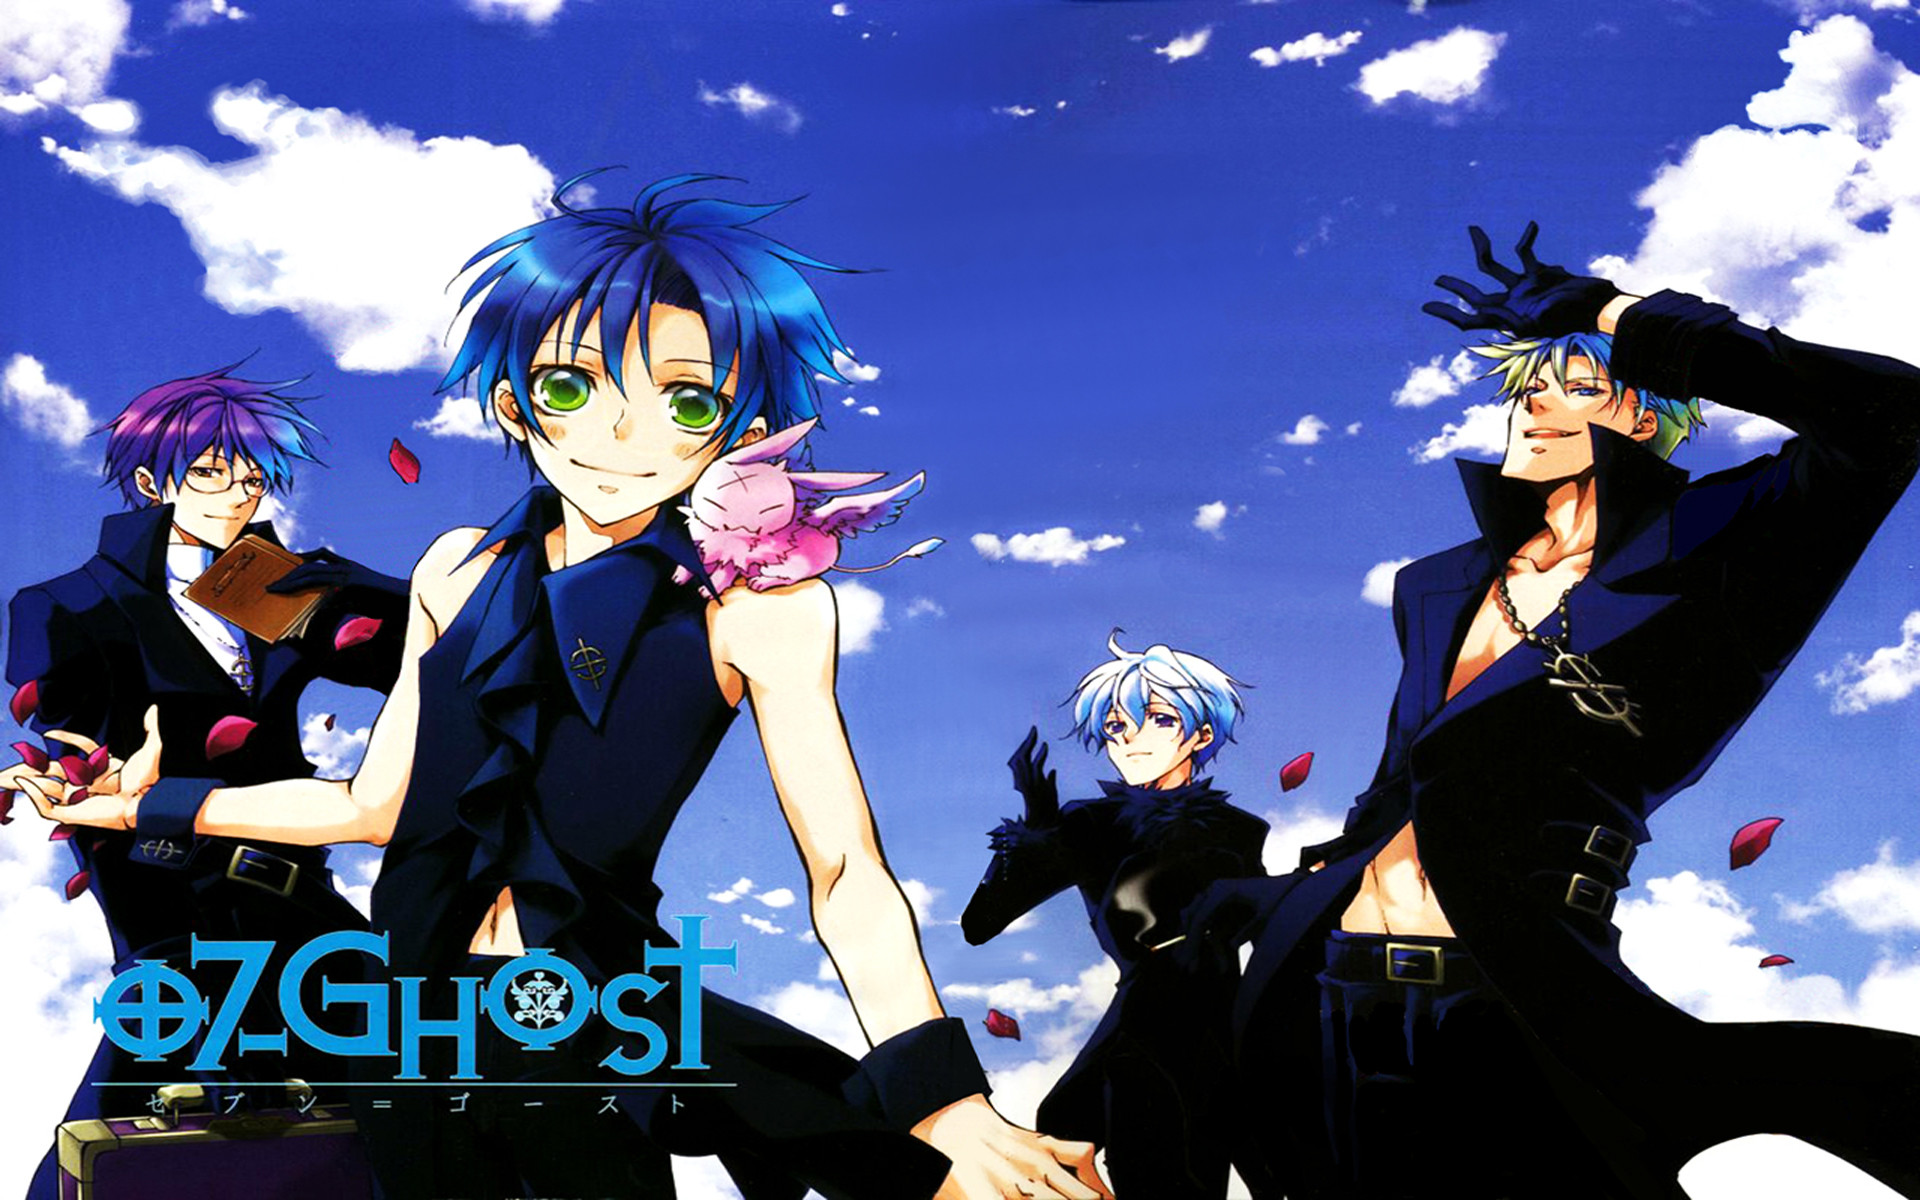 Res: 1920x1200, 07-ghost anime images 07-ghost HD wallpaper and background photos